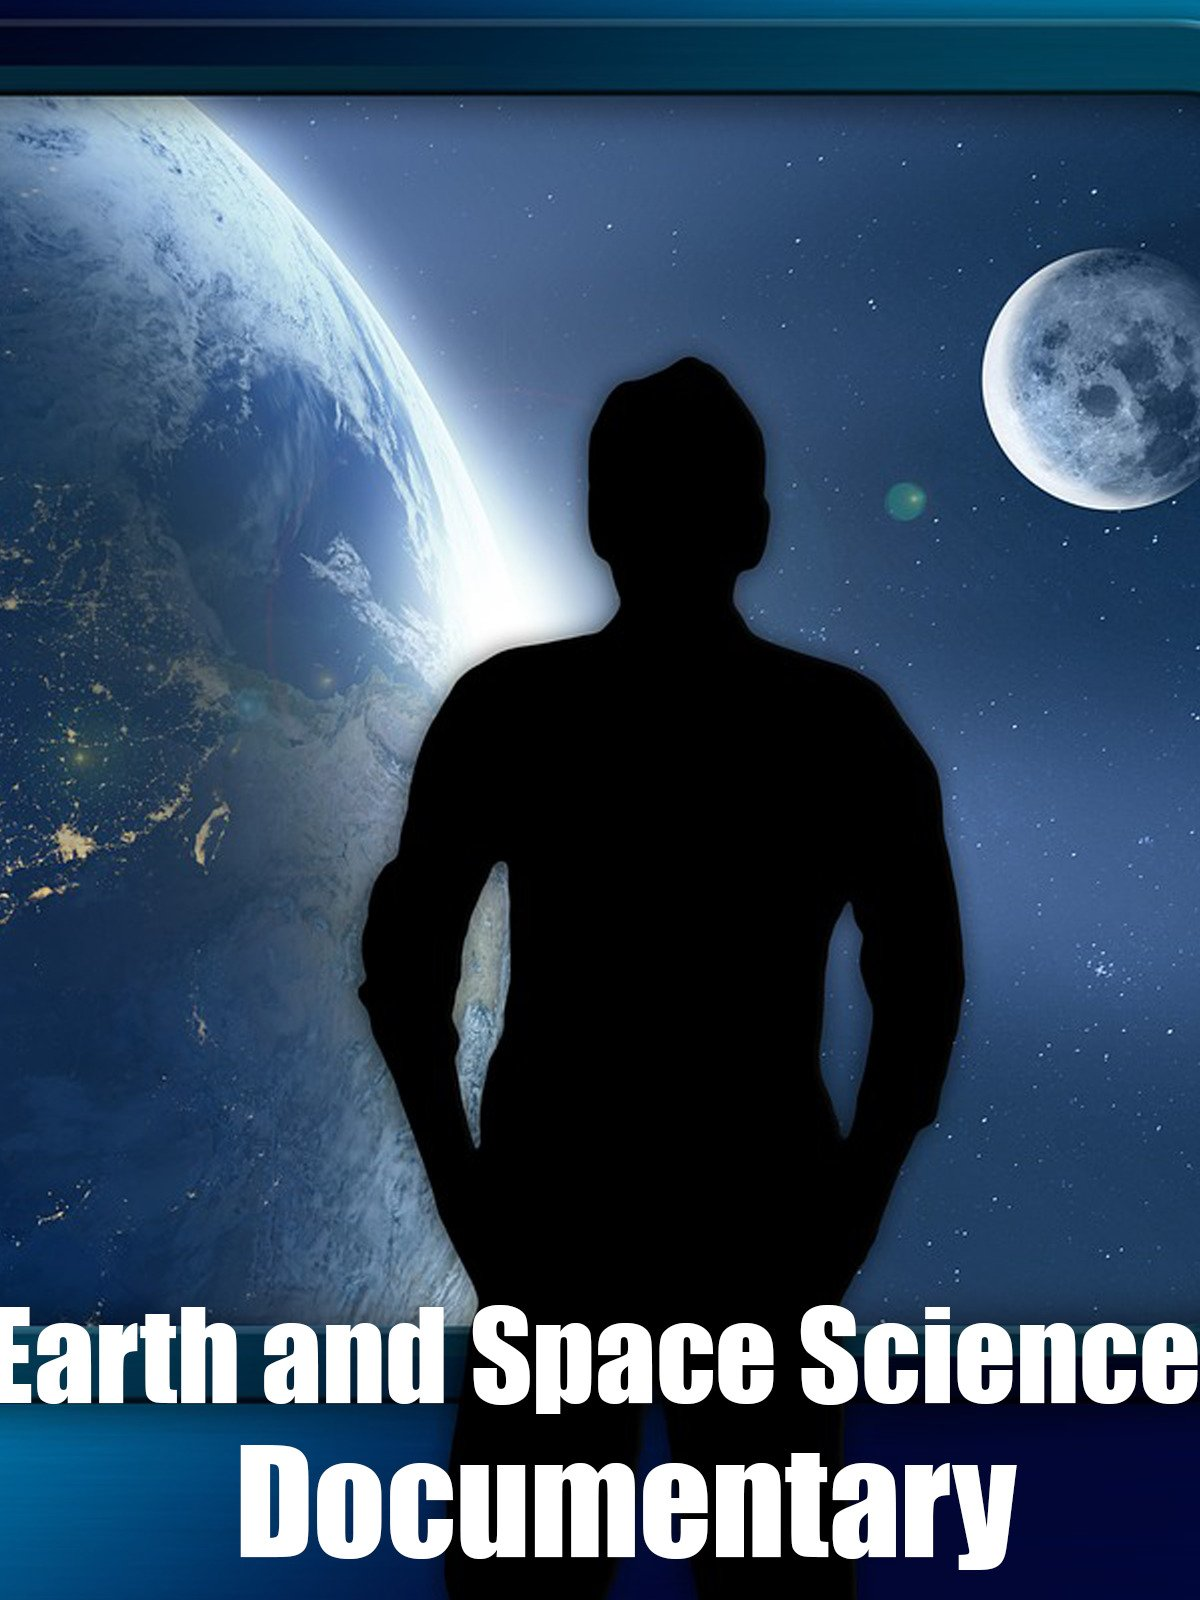 Earth and Space Science: Documentary